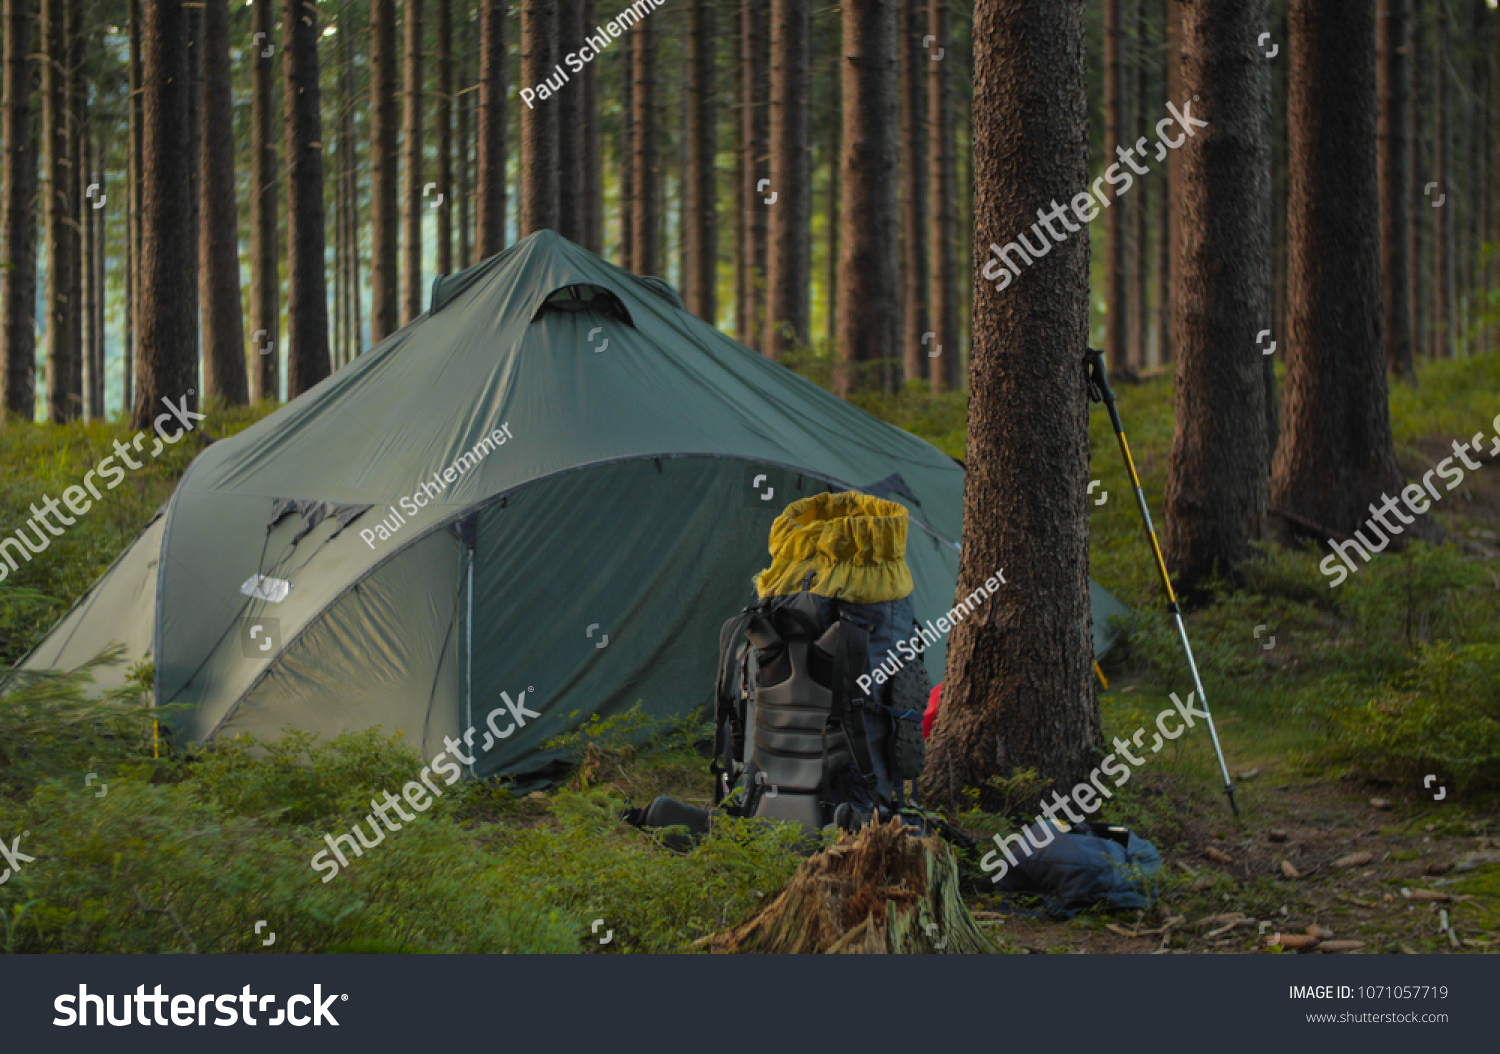 view of a backpack and tent pitched in forest c&ing & View Backpack Tent Pitched Forest Camping Stock Photo (Edit Now ...